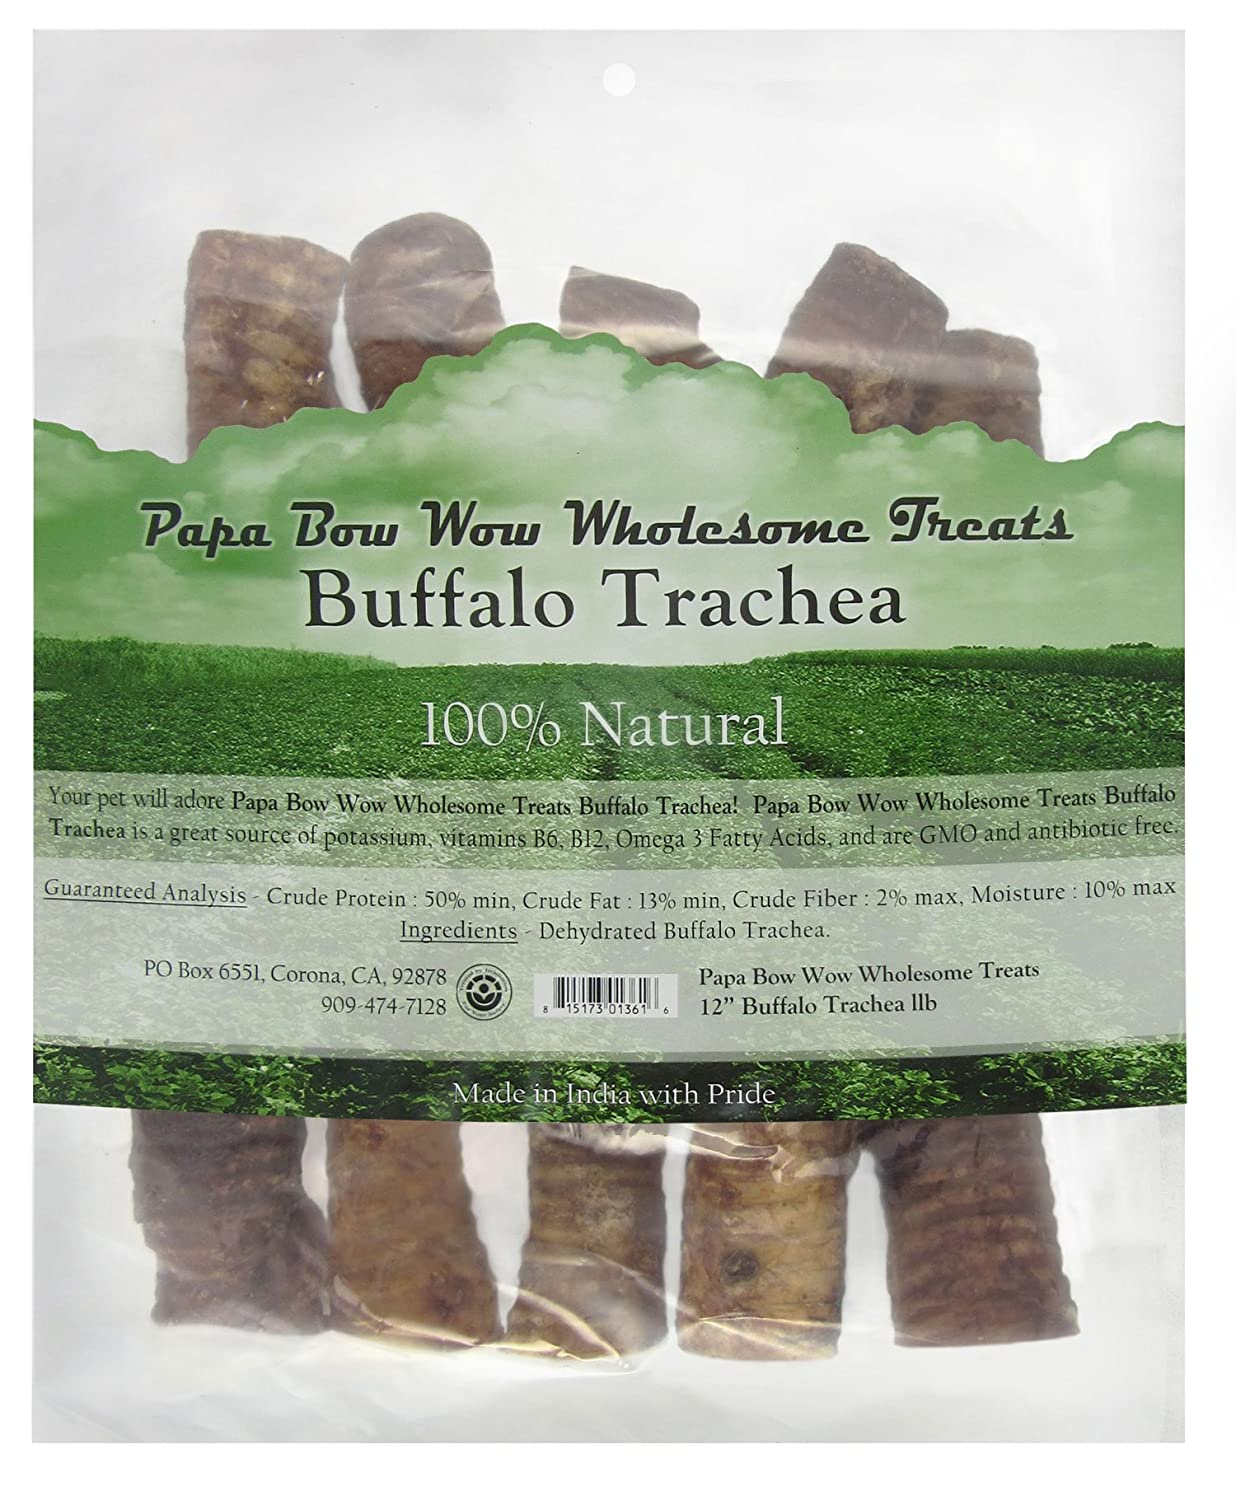 Papa Bow Wow Buffalo Treats for Dogs, Trachea